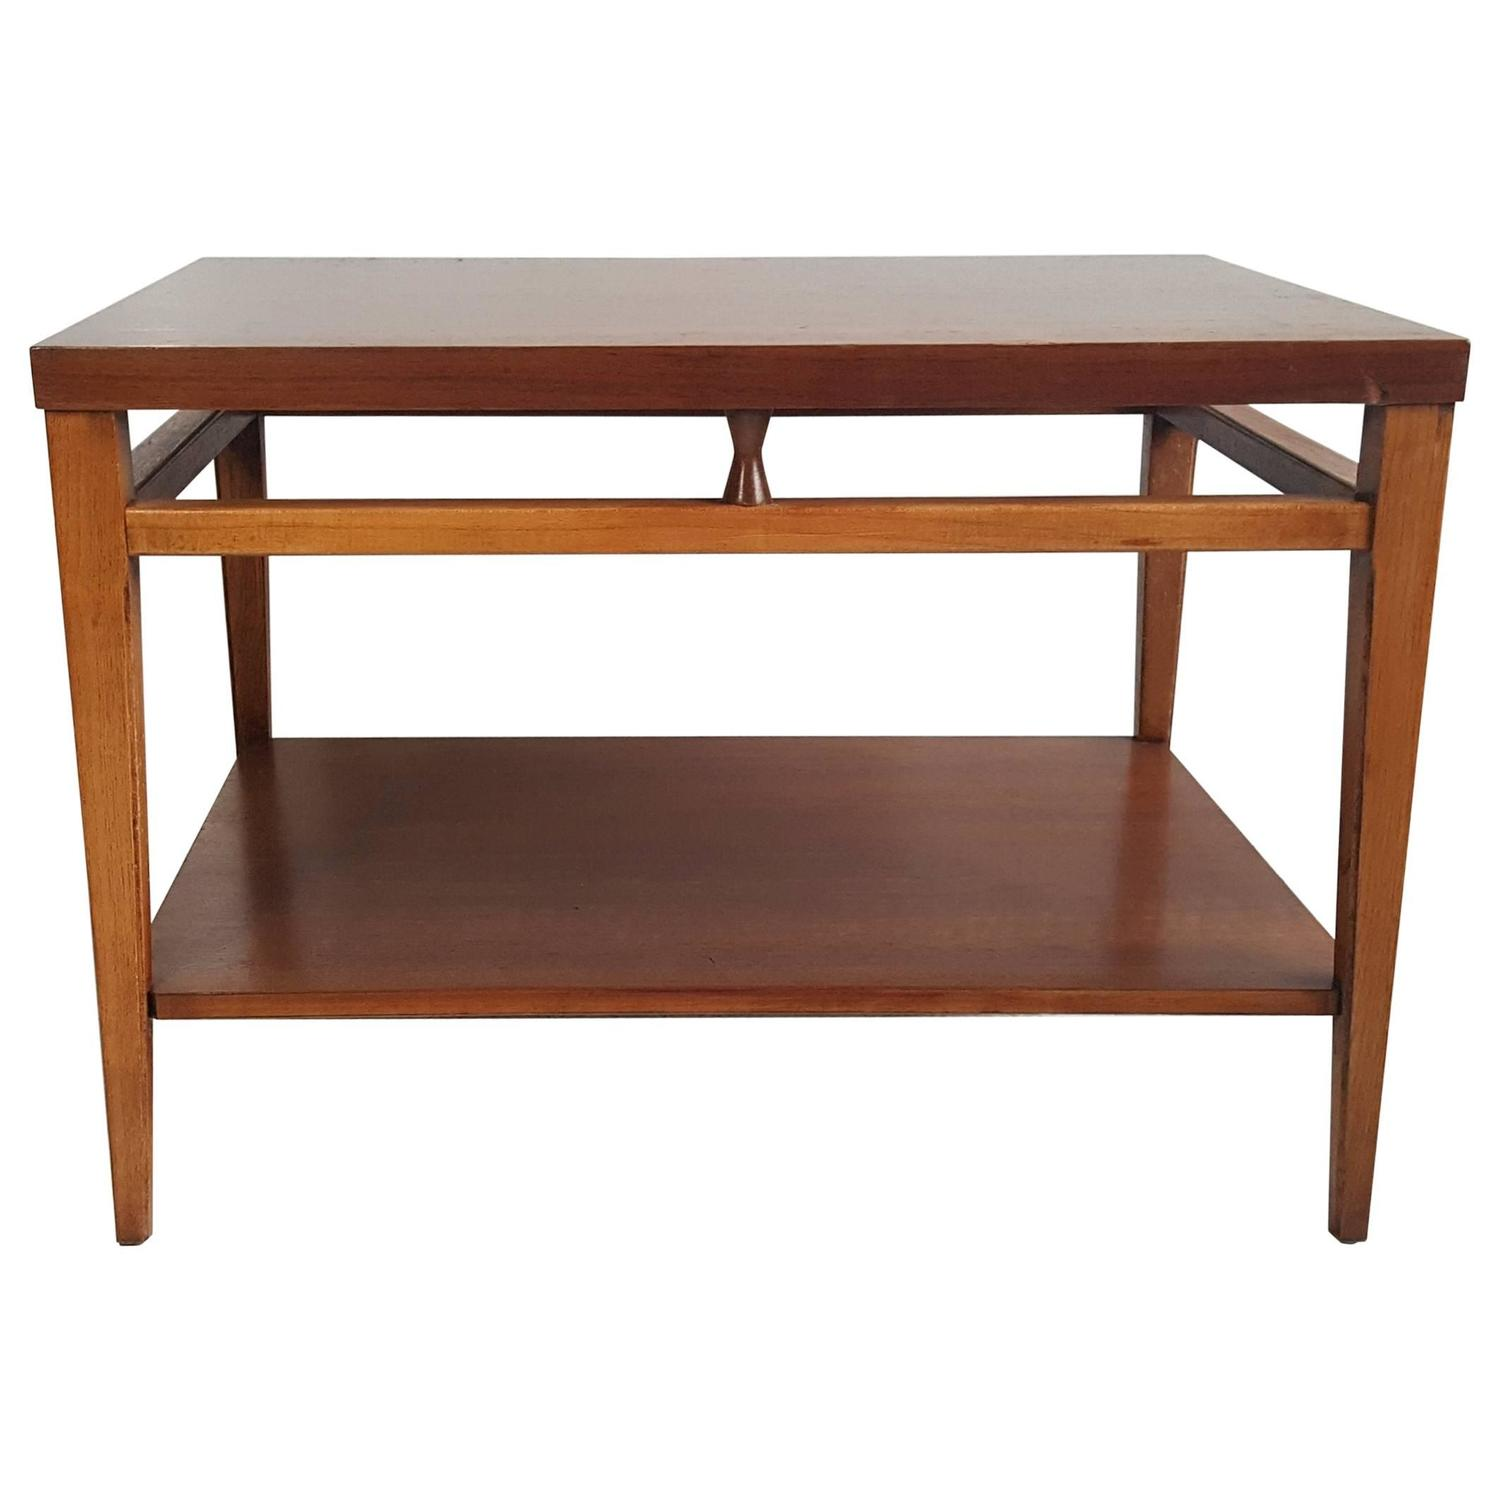 Exceptionnel Mid Century Modern Walnut And Rosewood End Table U0026quot;Tuxedou0026quot; By Lane